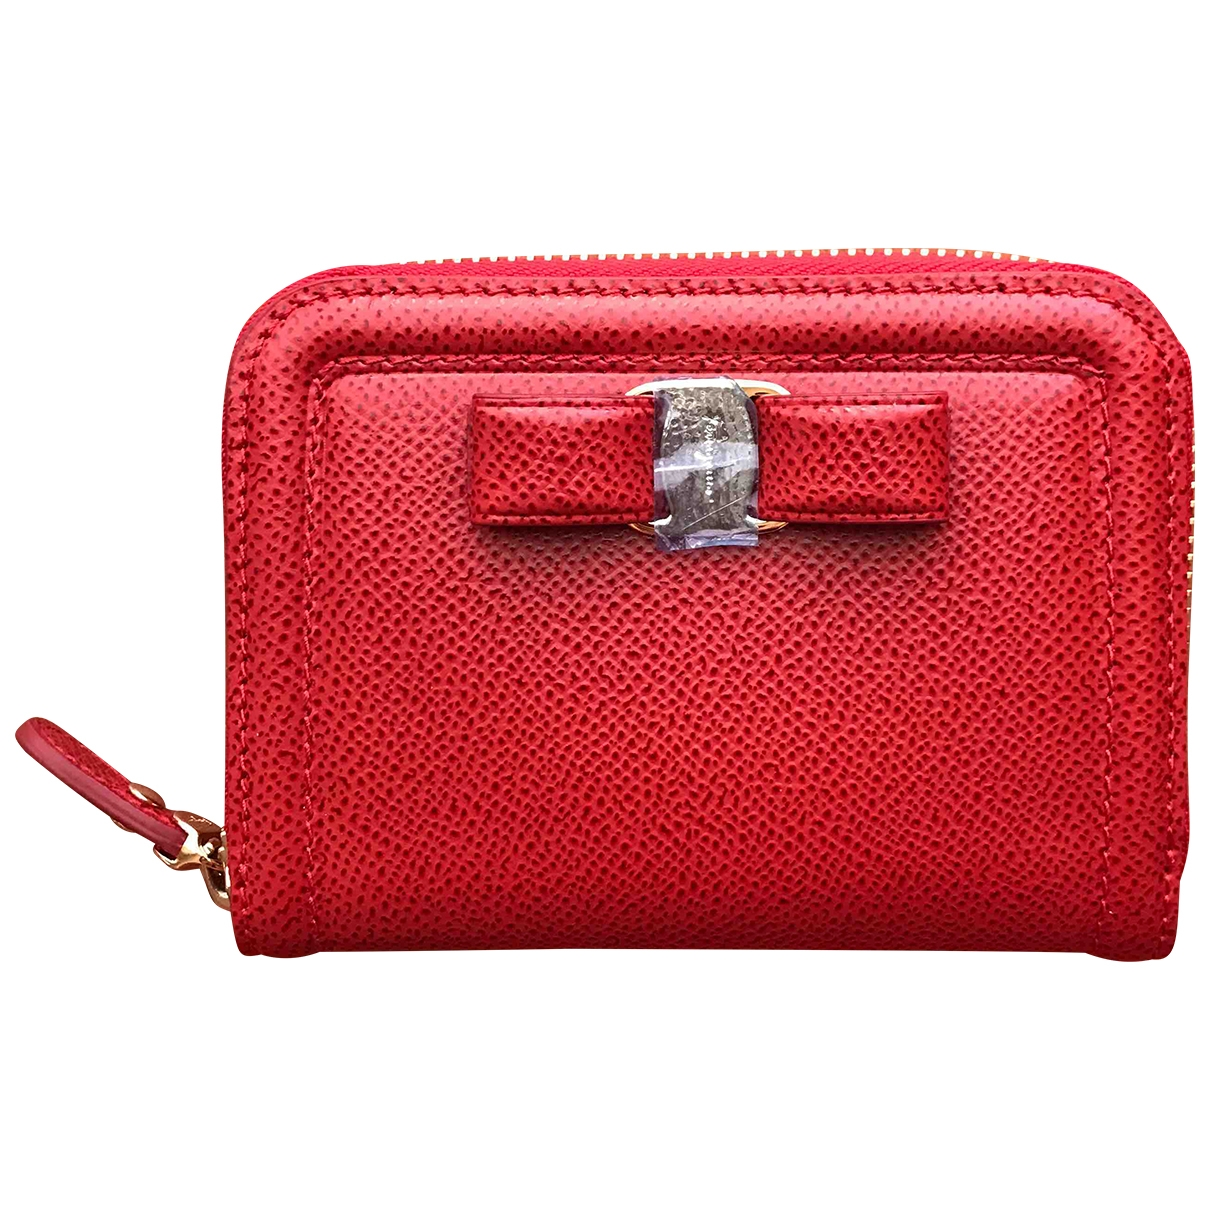 Salvatore Ferragamo \N Red Leather wallet for Women \N